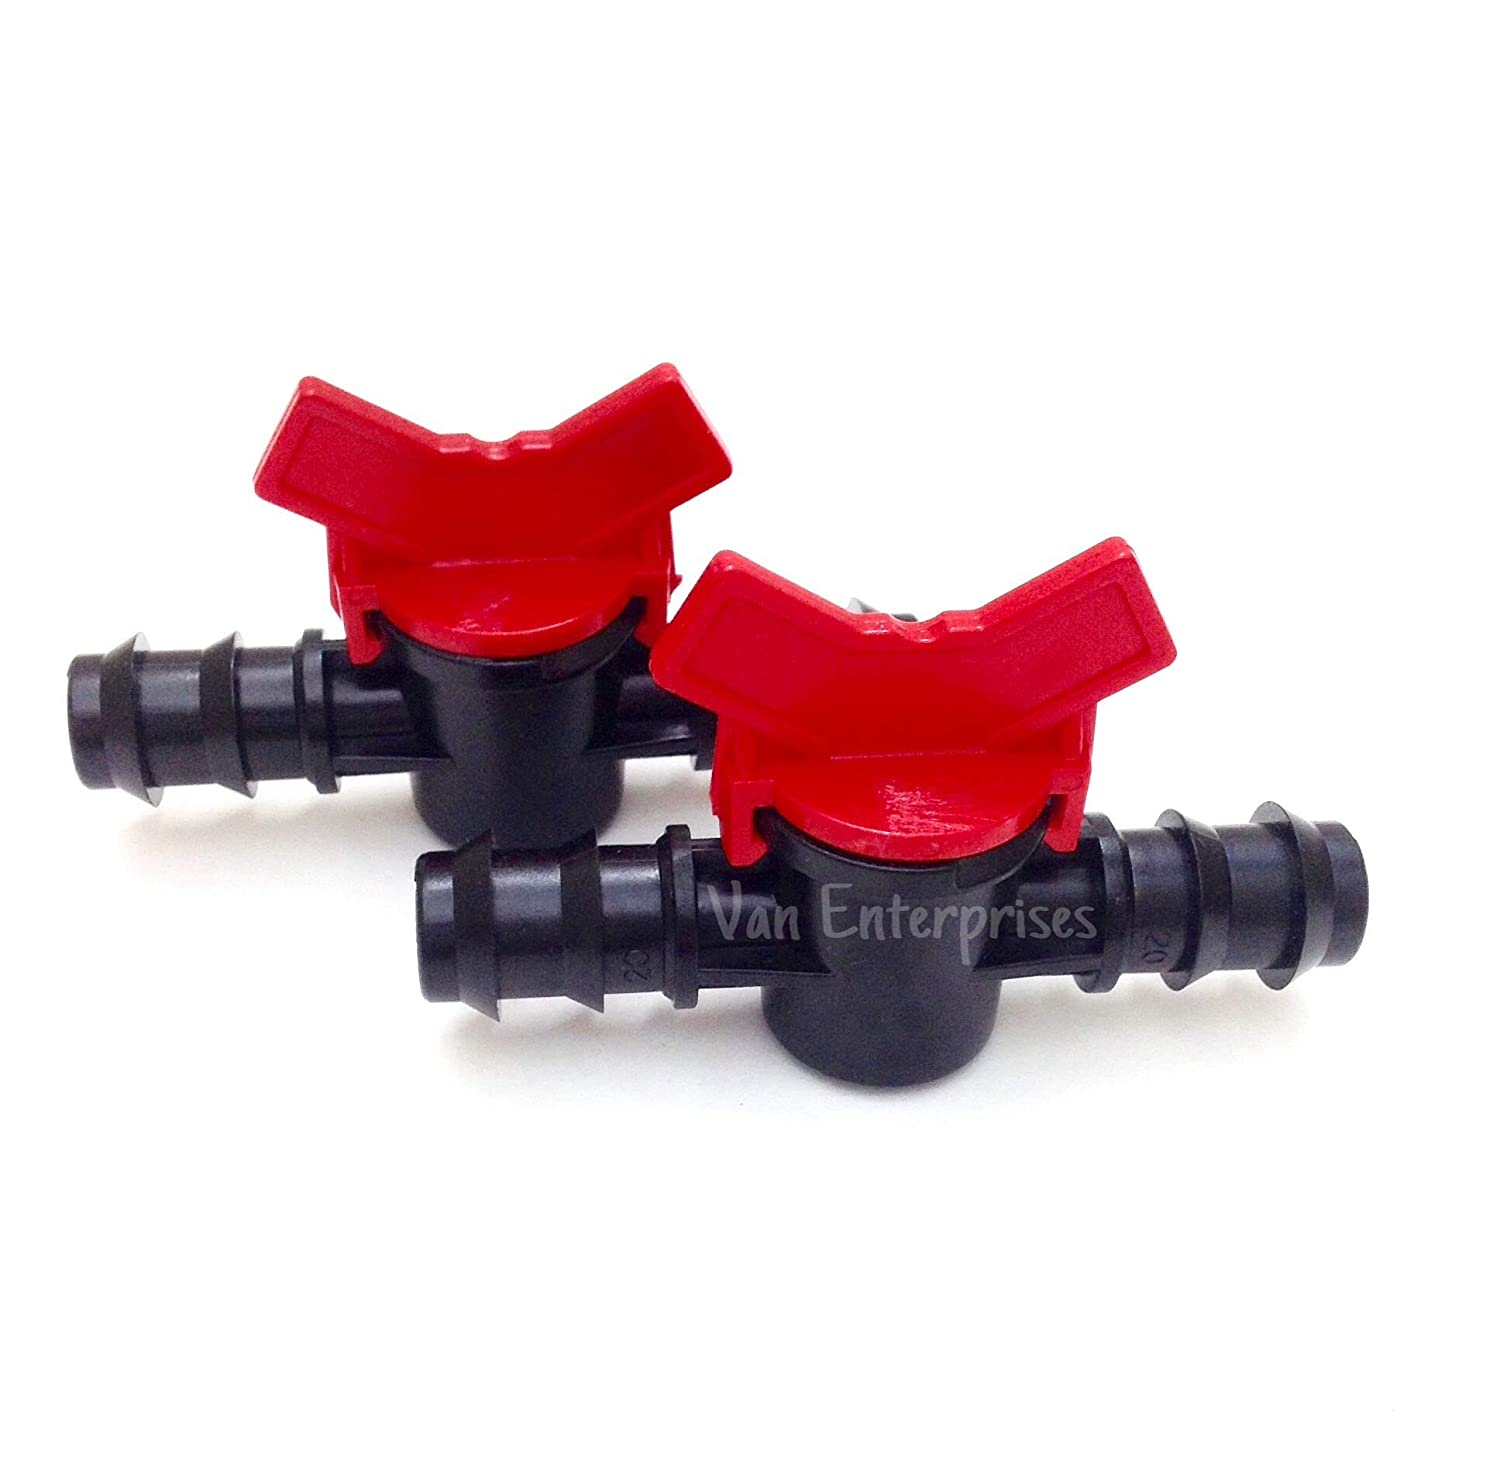 "2PK of 3/8"" ID PVC Ball Valves Hose Barb Connectors (3/8"" ID) for Drip Irrigation Hoses and Aquariums [Various Sizes Available]"